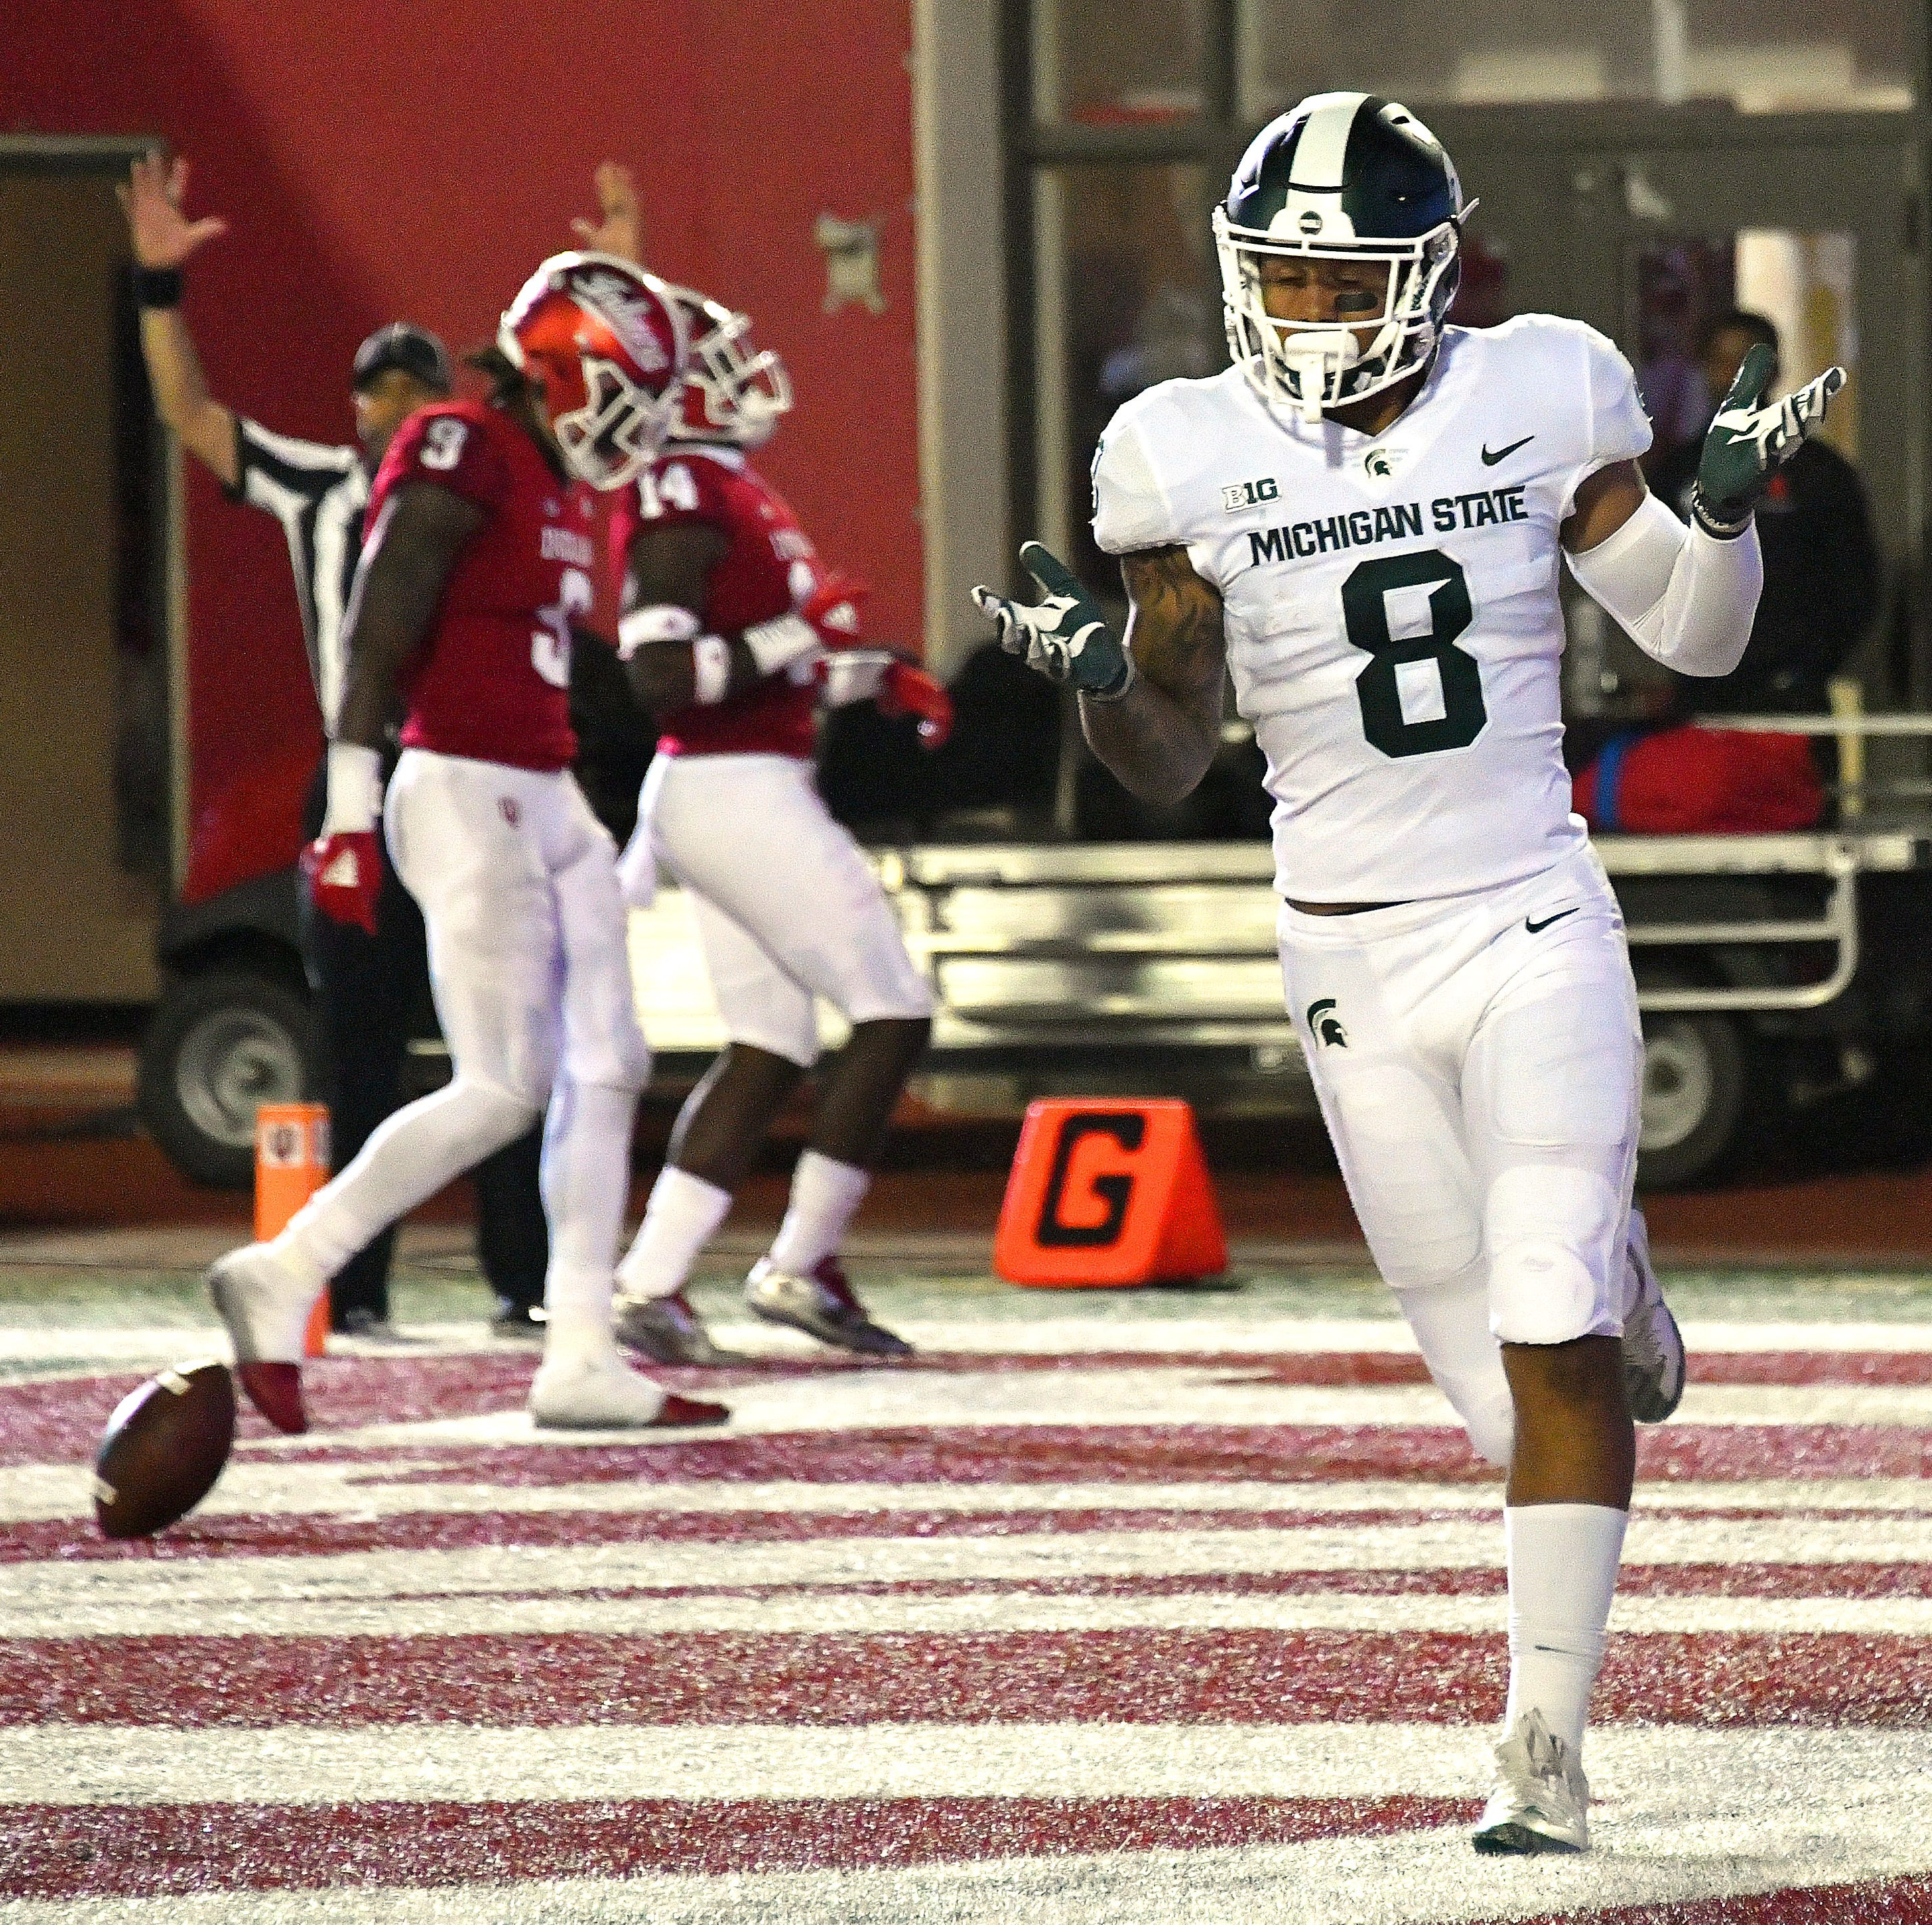 Injuries force MSU to scramble lineup in win over Indiana